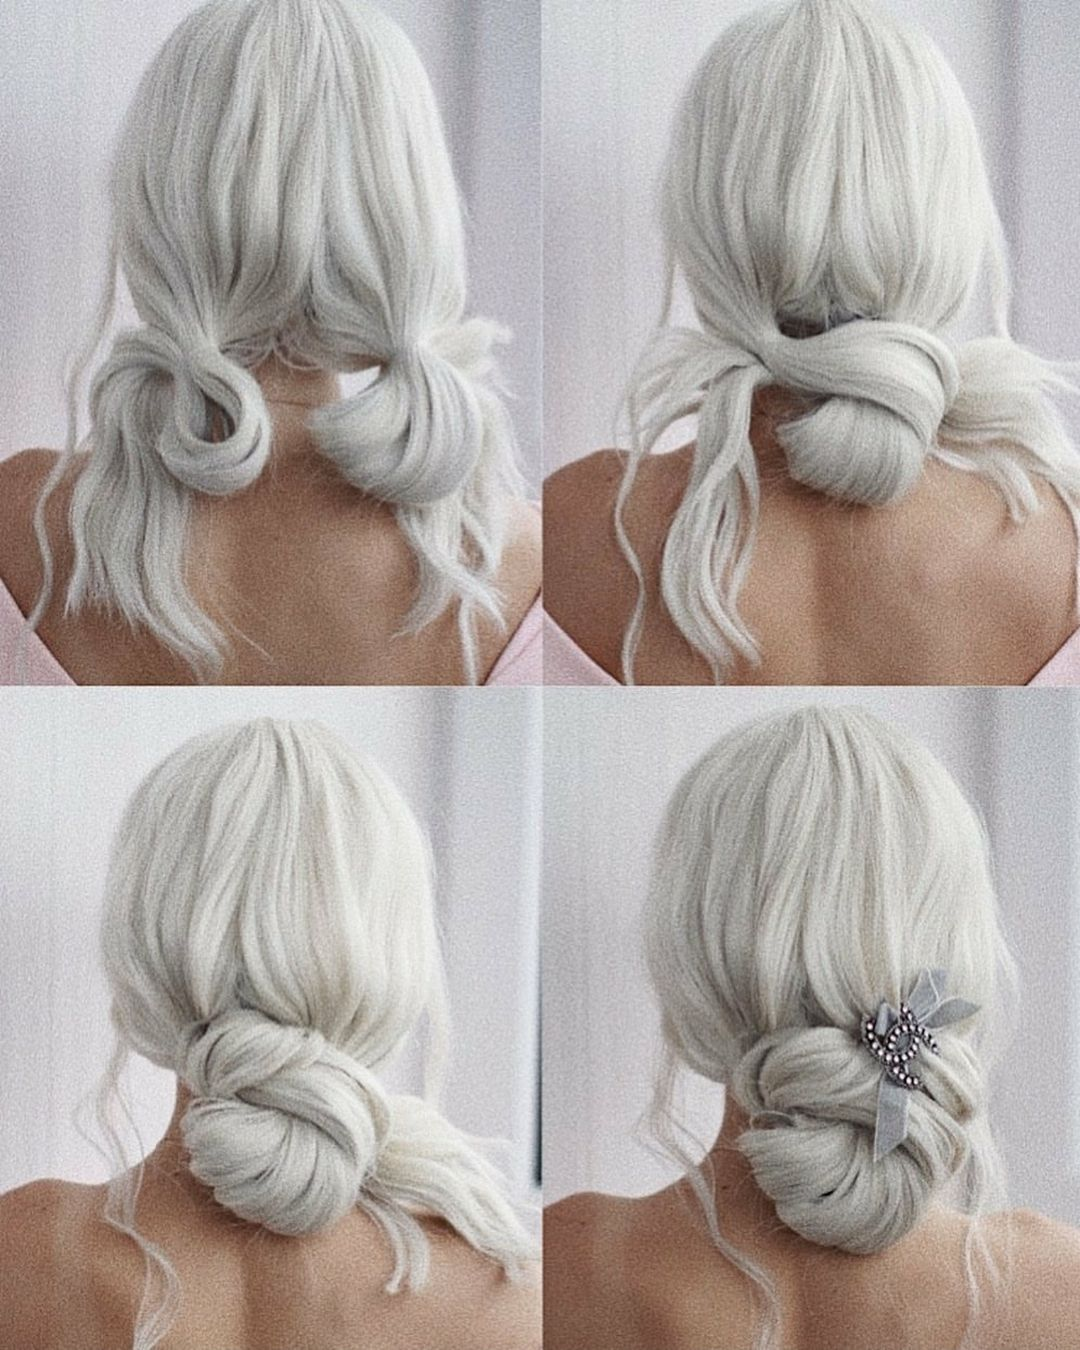 "behindthechair.com on Instagram: ""* Holiday Hair ... by @ulyana.aster + #Chanel"